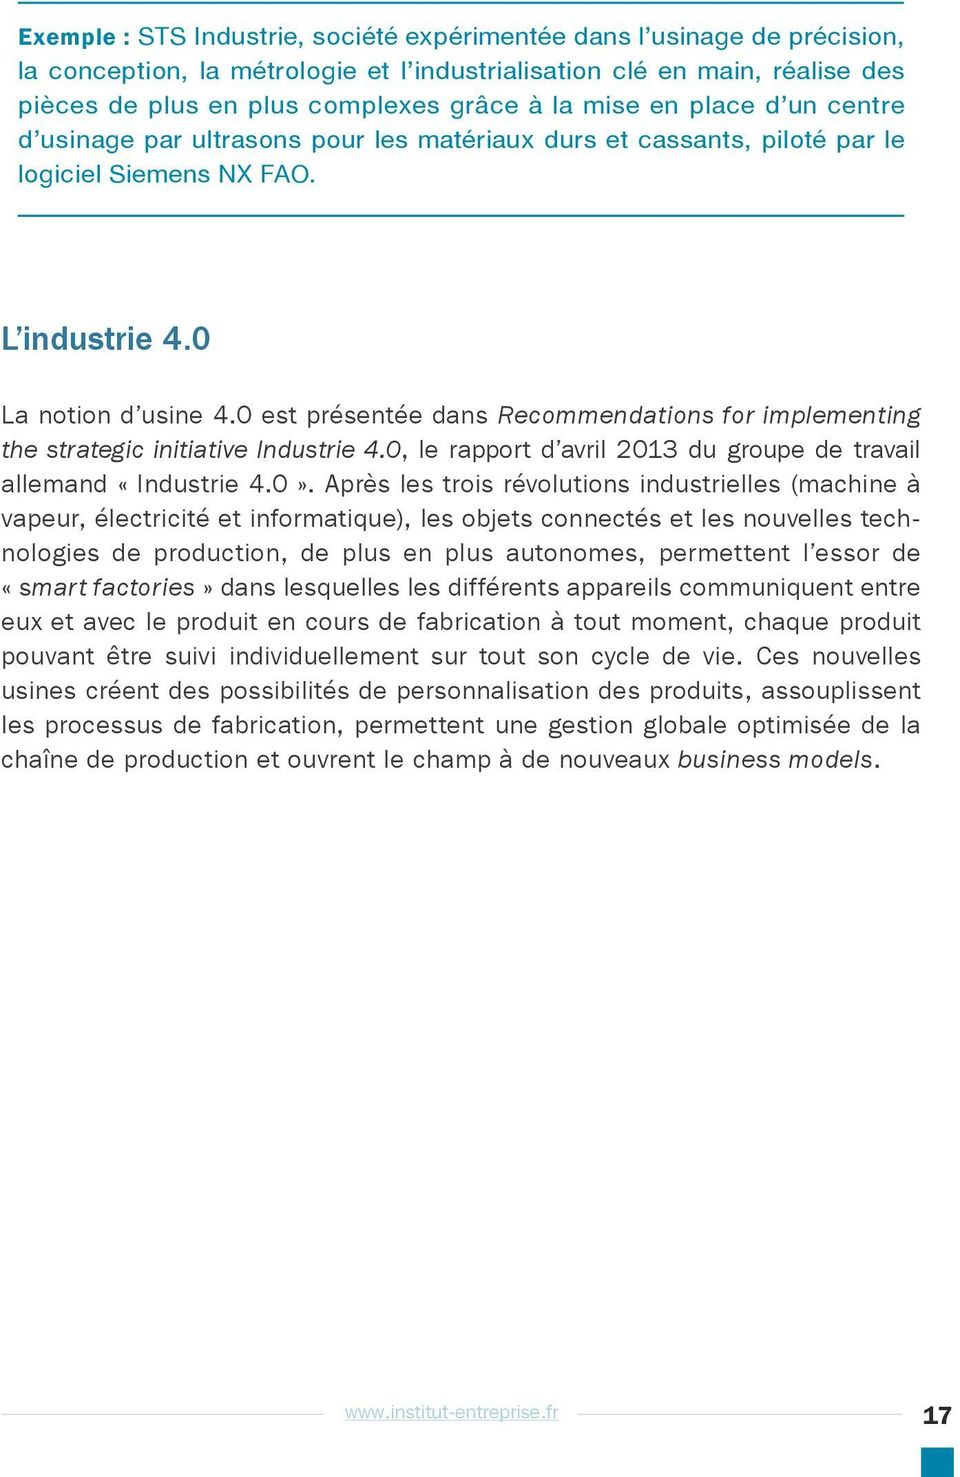 0 est présentée dans Recommendations for implementing the strategic initiative Industrie 4.0, le rapport d avril 2013 du groupe de travail allemand «Industrie 4.0».